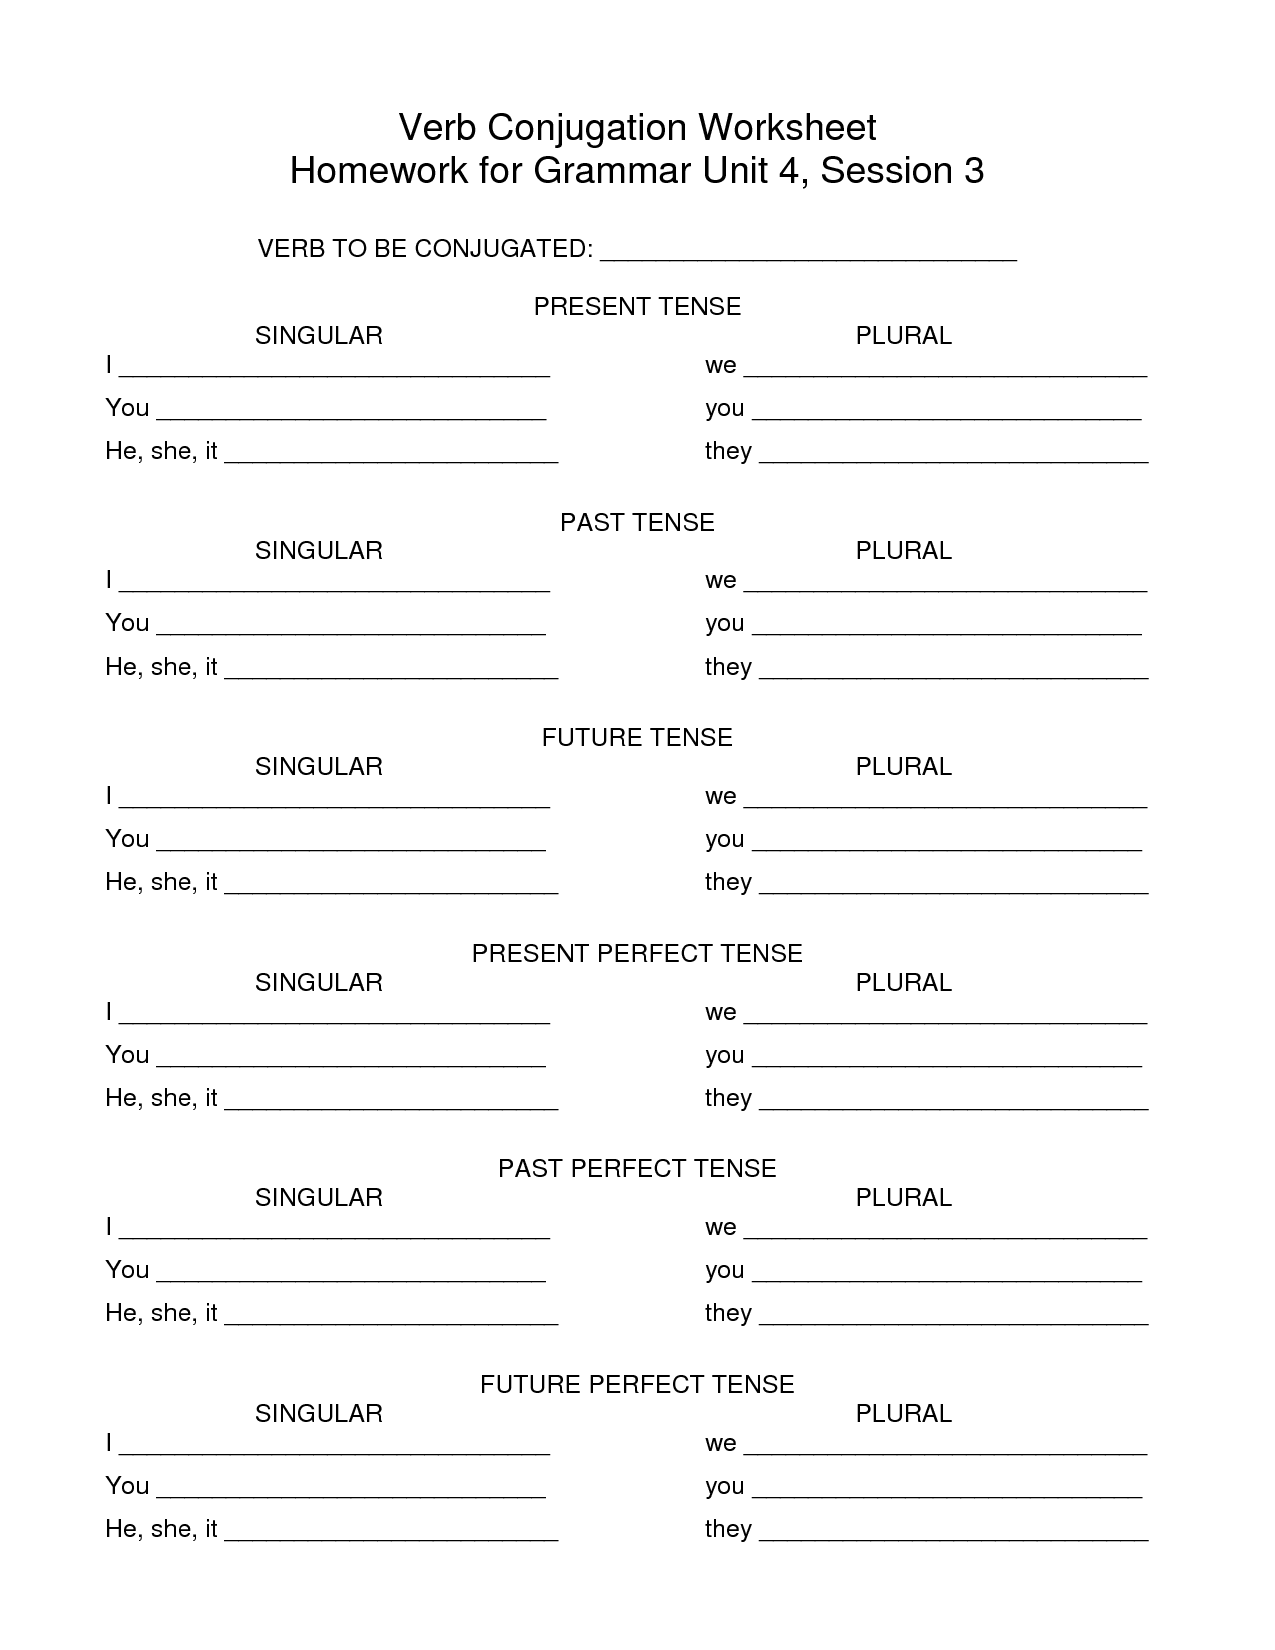 Spanish Verb Conjugation Worksheets Blank